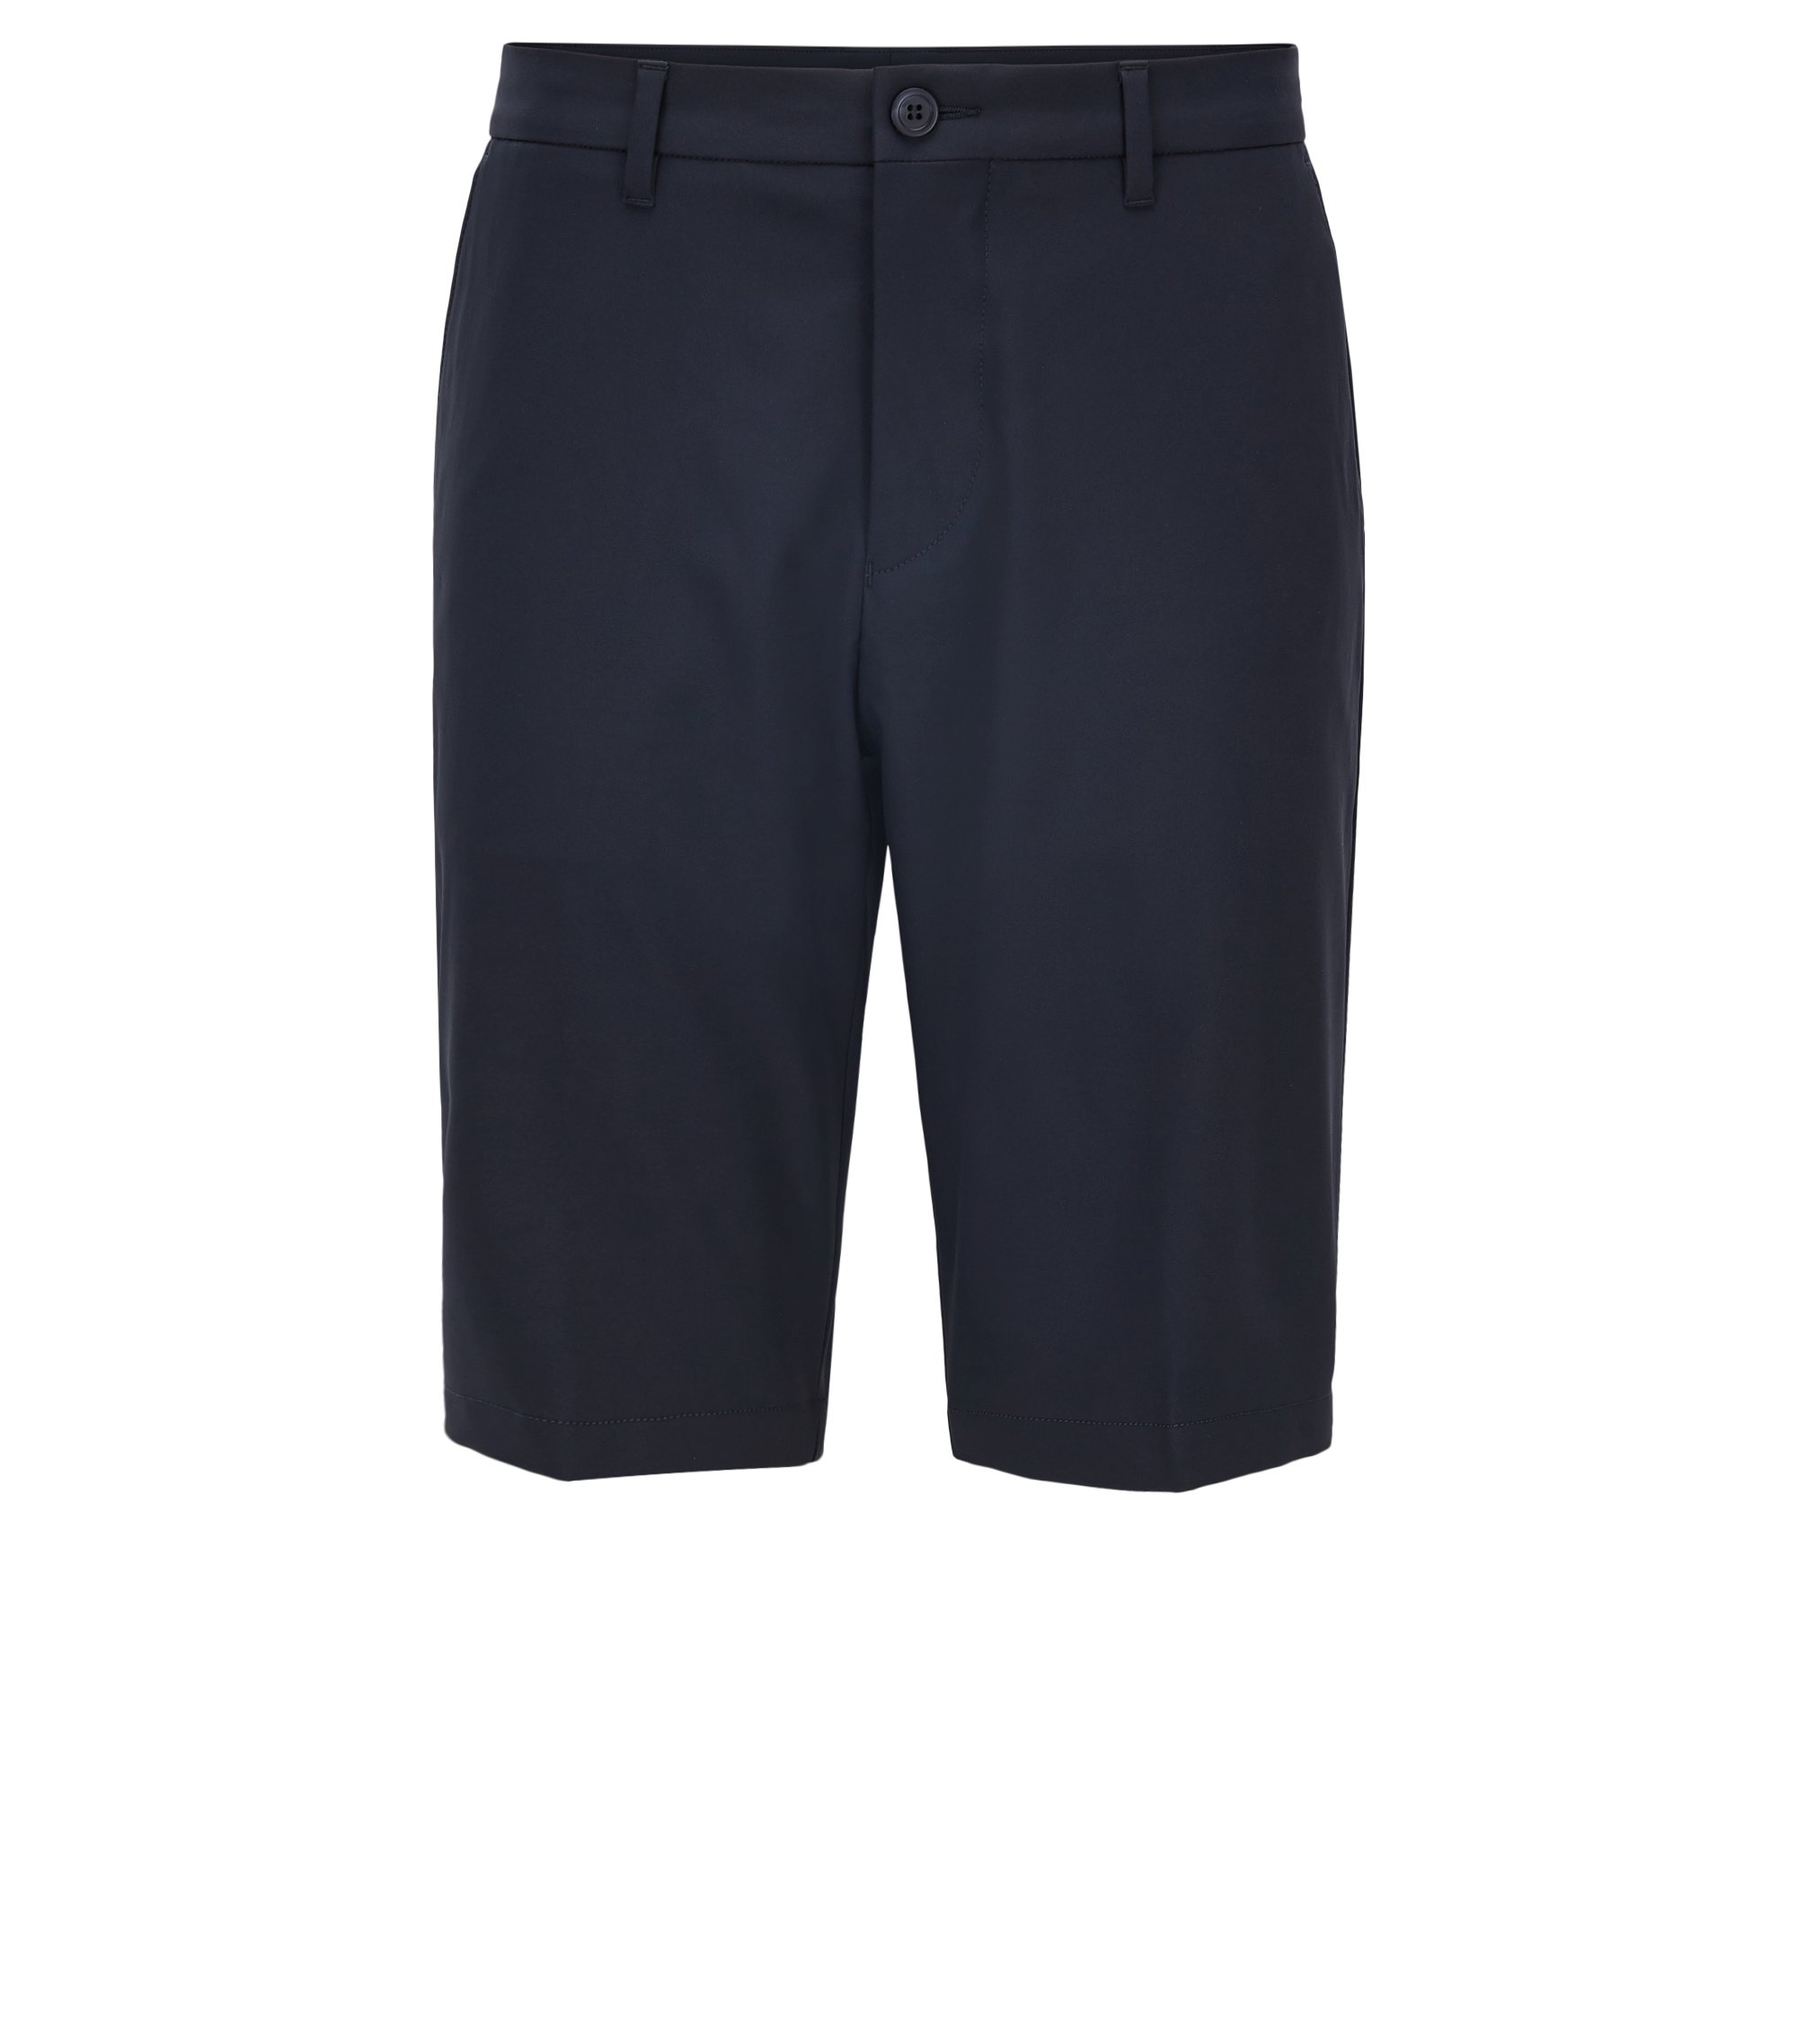 Shorts regular fit de golf en sarga técnica, Azul oscuro